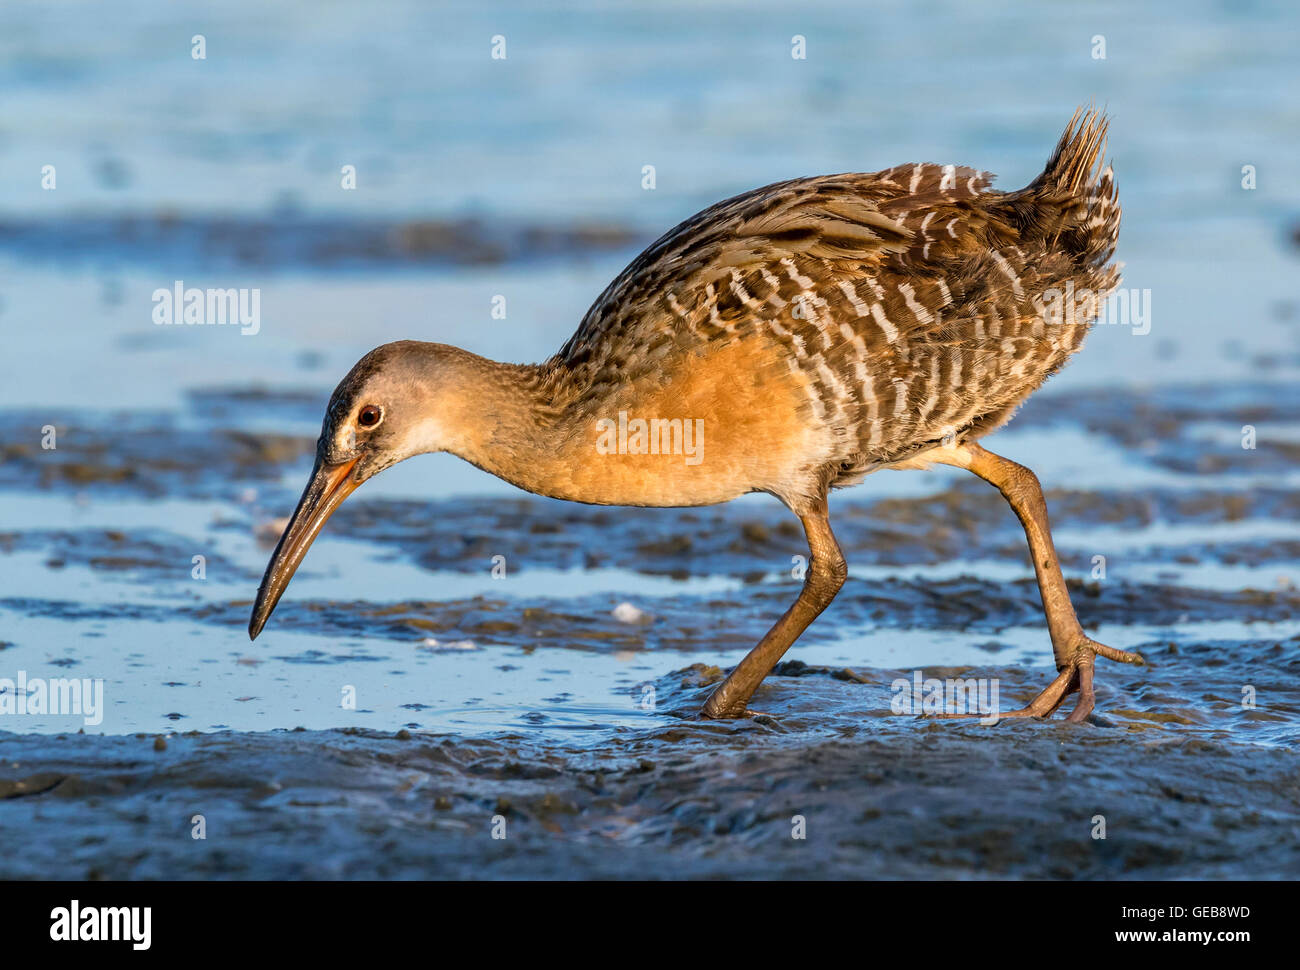 Clapper rail (Rallus crepitans) looking for food at the muddy edge of tidal marsh at early morning, Galveston, Texas, - Stock Image